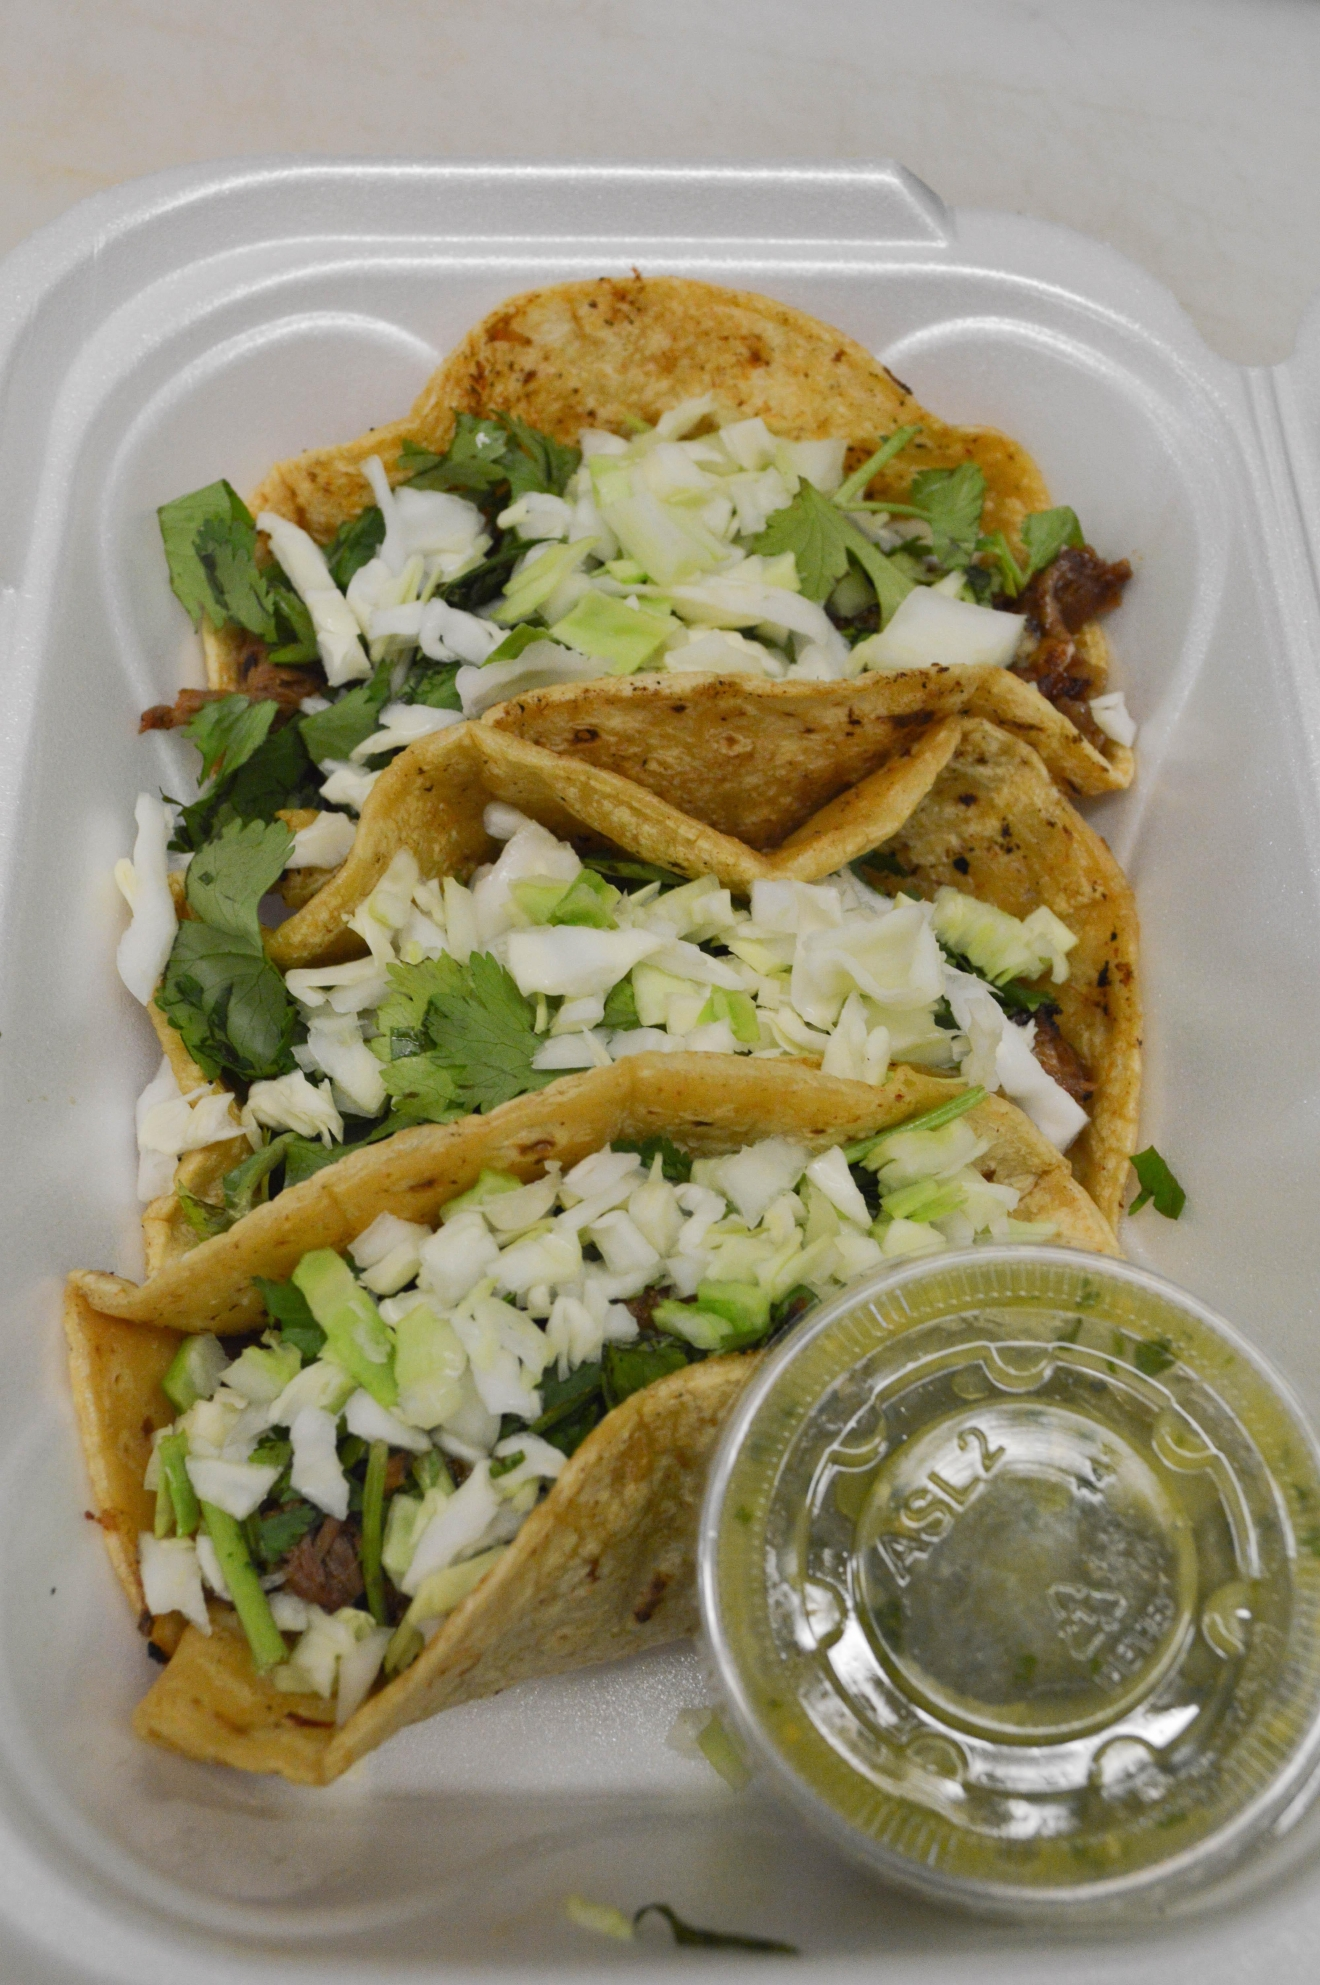 Beef tacos / Image: Liliana Dillingham / Published: 10.30.16